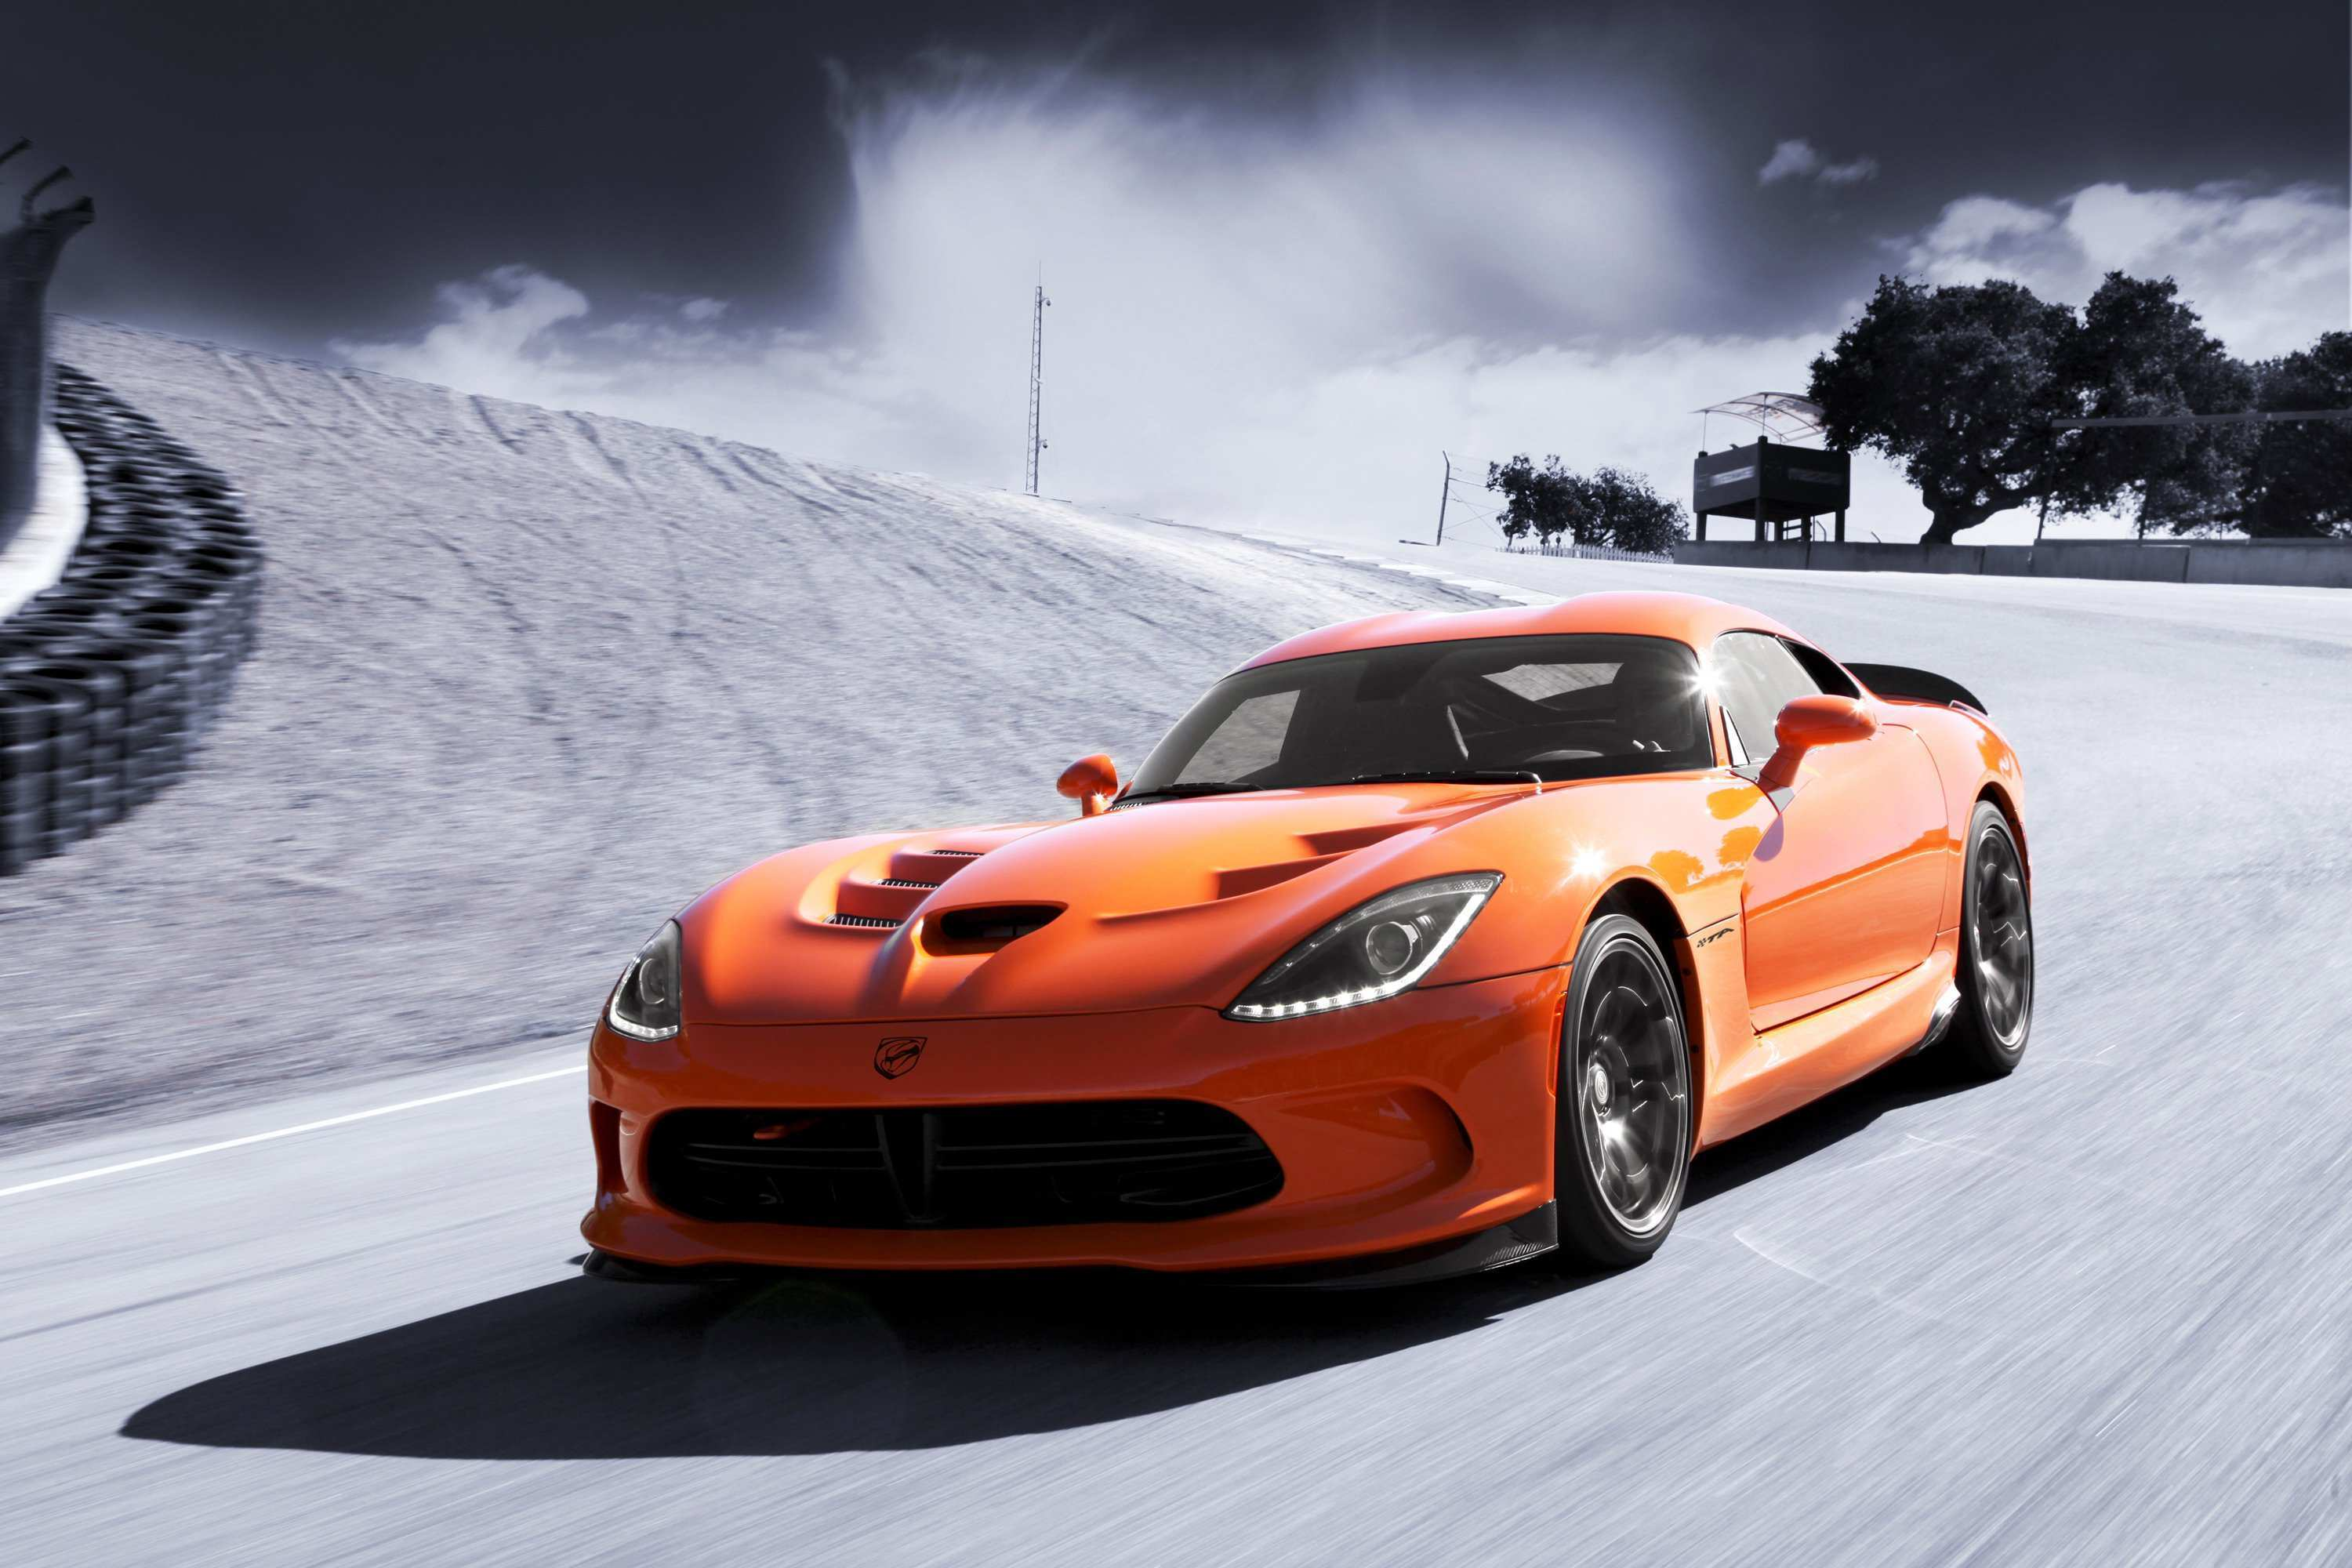 27 Concept of 2020 Dodge Viper Mid Engine Images by 2020 Dodge Viper Mid Engine